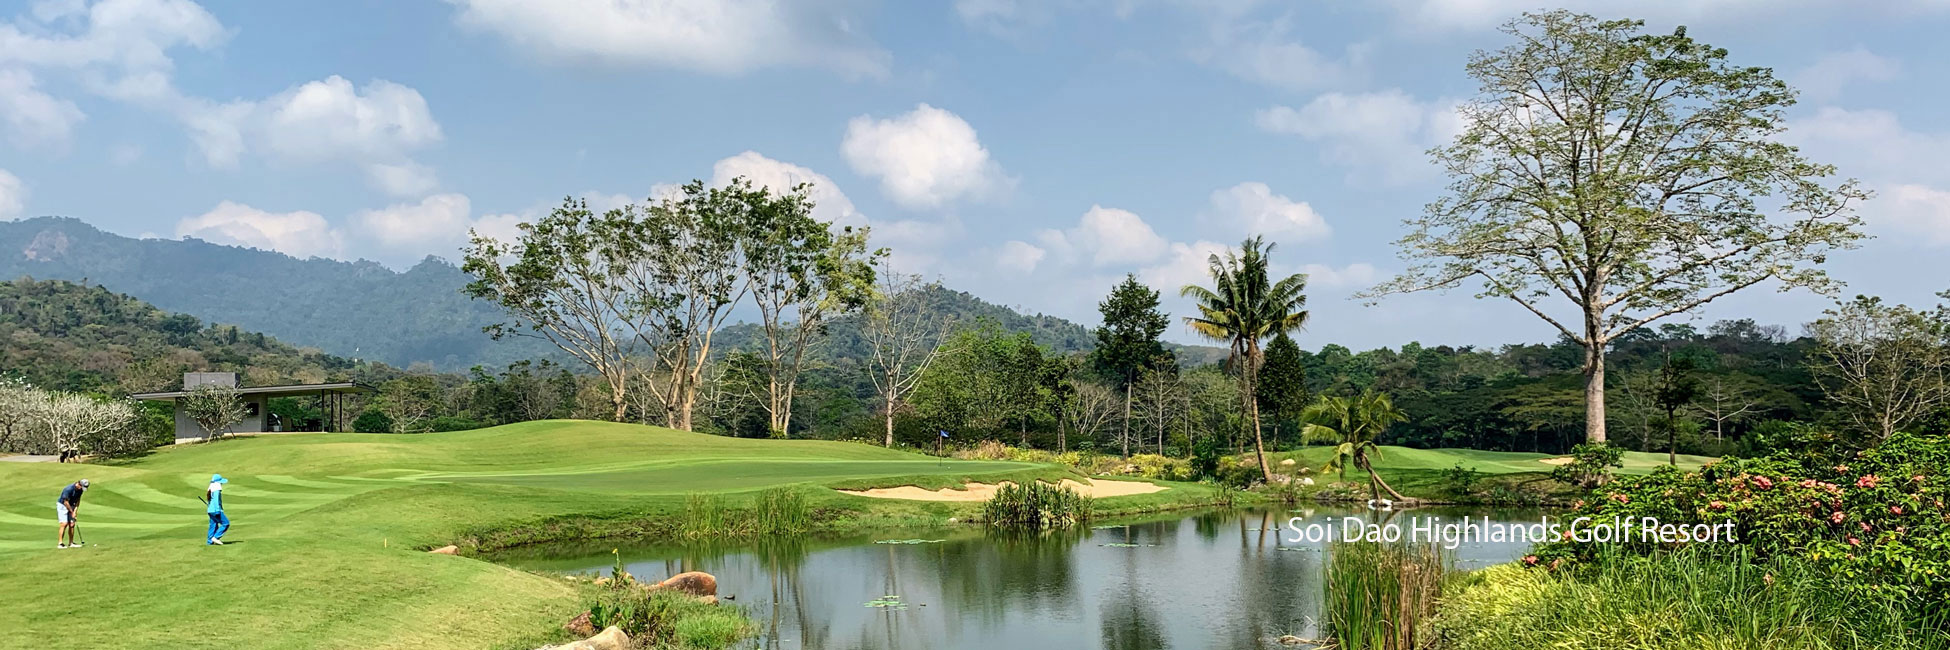 The Pattaya Golf Holiday Experts